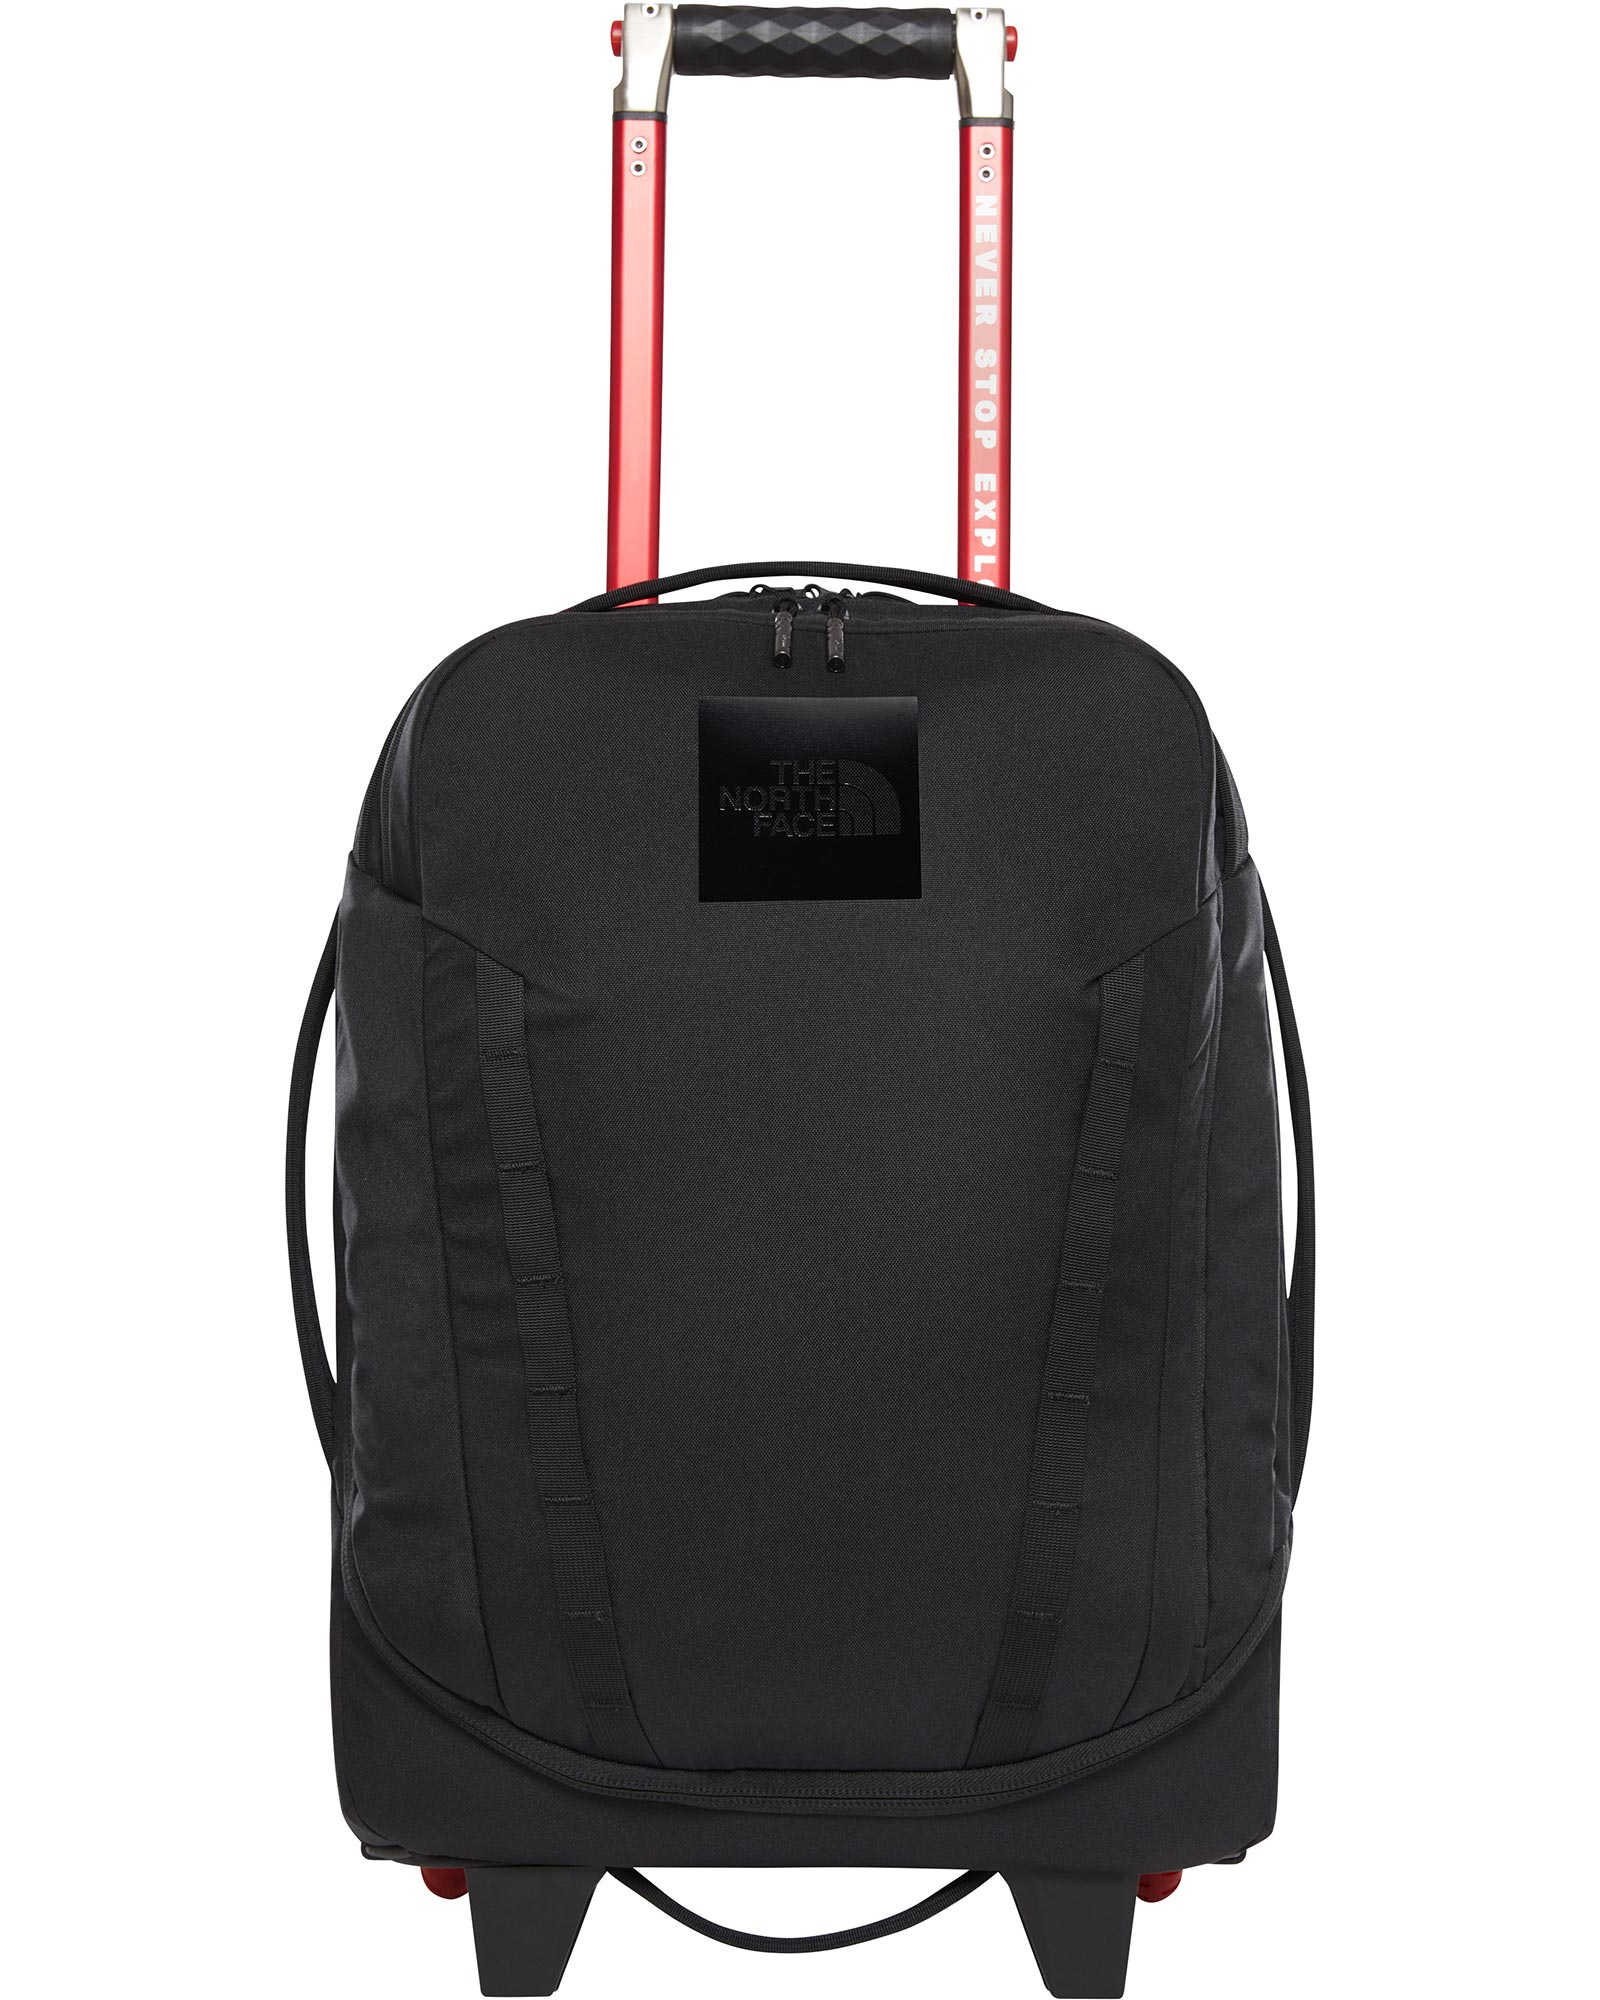 The North Face Overhead 19 Travel Luggage 0